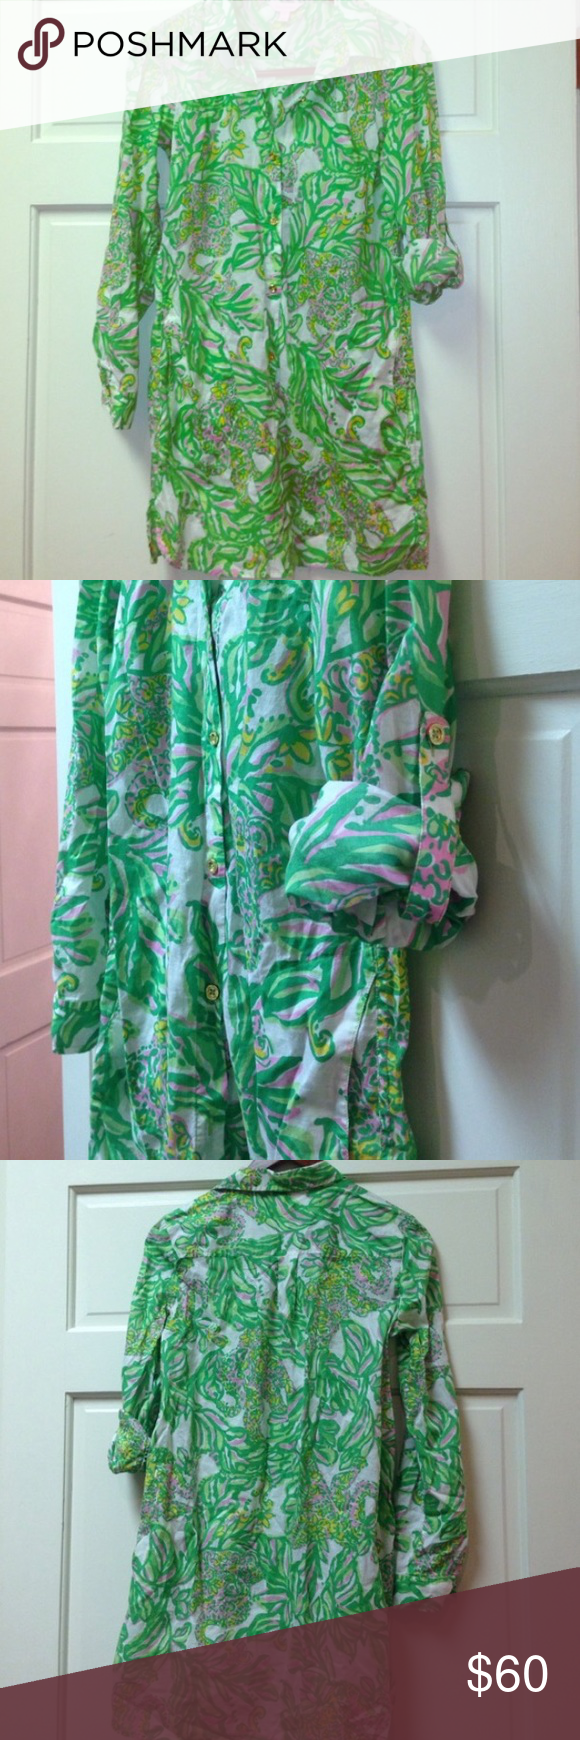 Lilly Pulitzer Tunic Cover up Beautiful tunic/ beach coverup. Like new condition. 100% cotton. Gold buttons. Lilly Pulitzer Swim Coverups